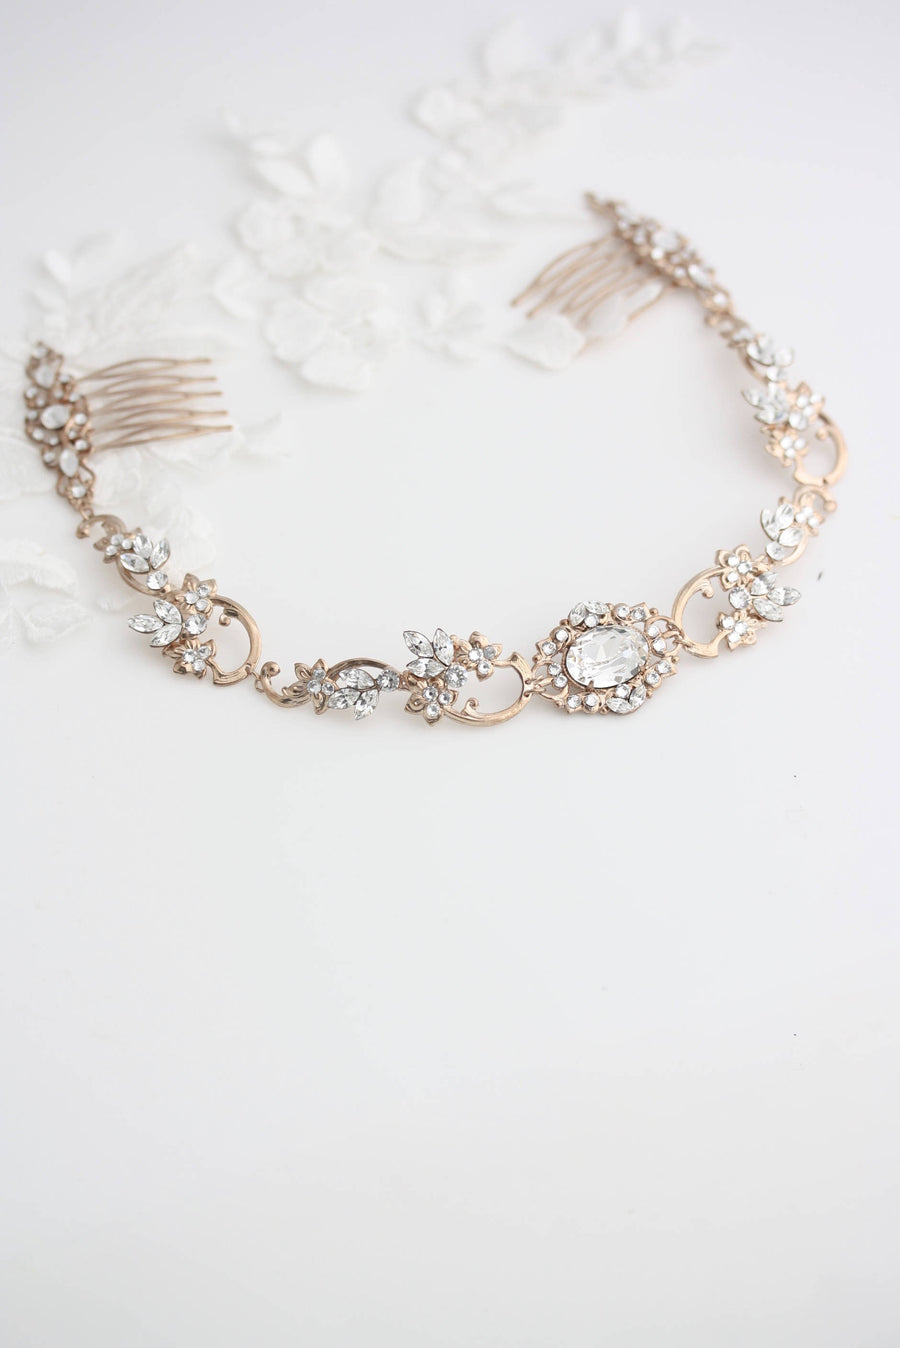 Ryan Bridal Halo Headpiece - Lulu Splendor